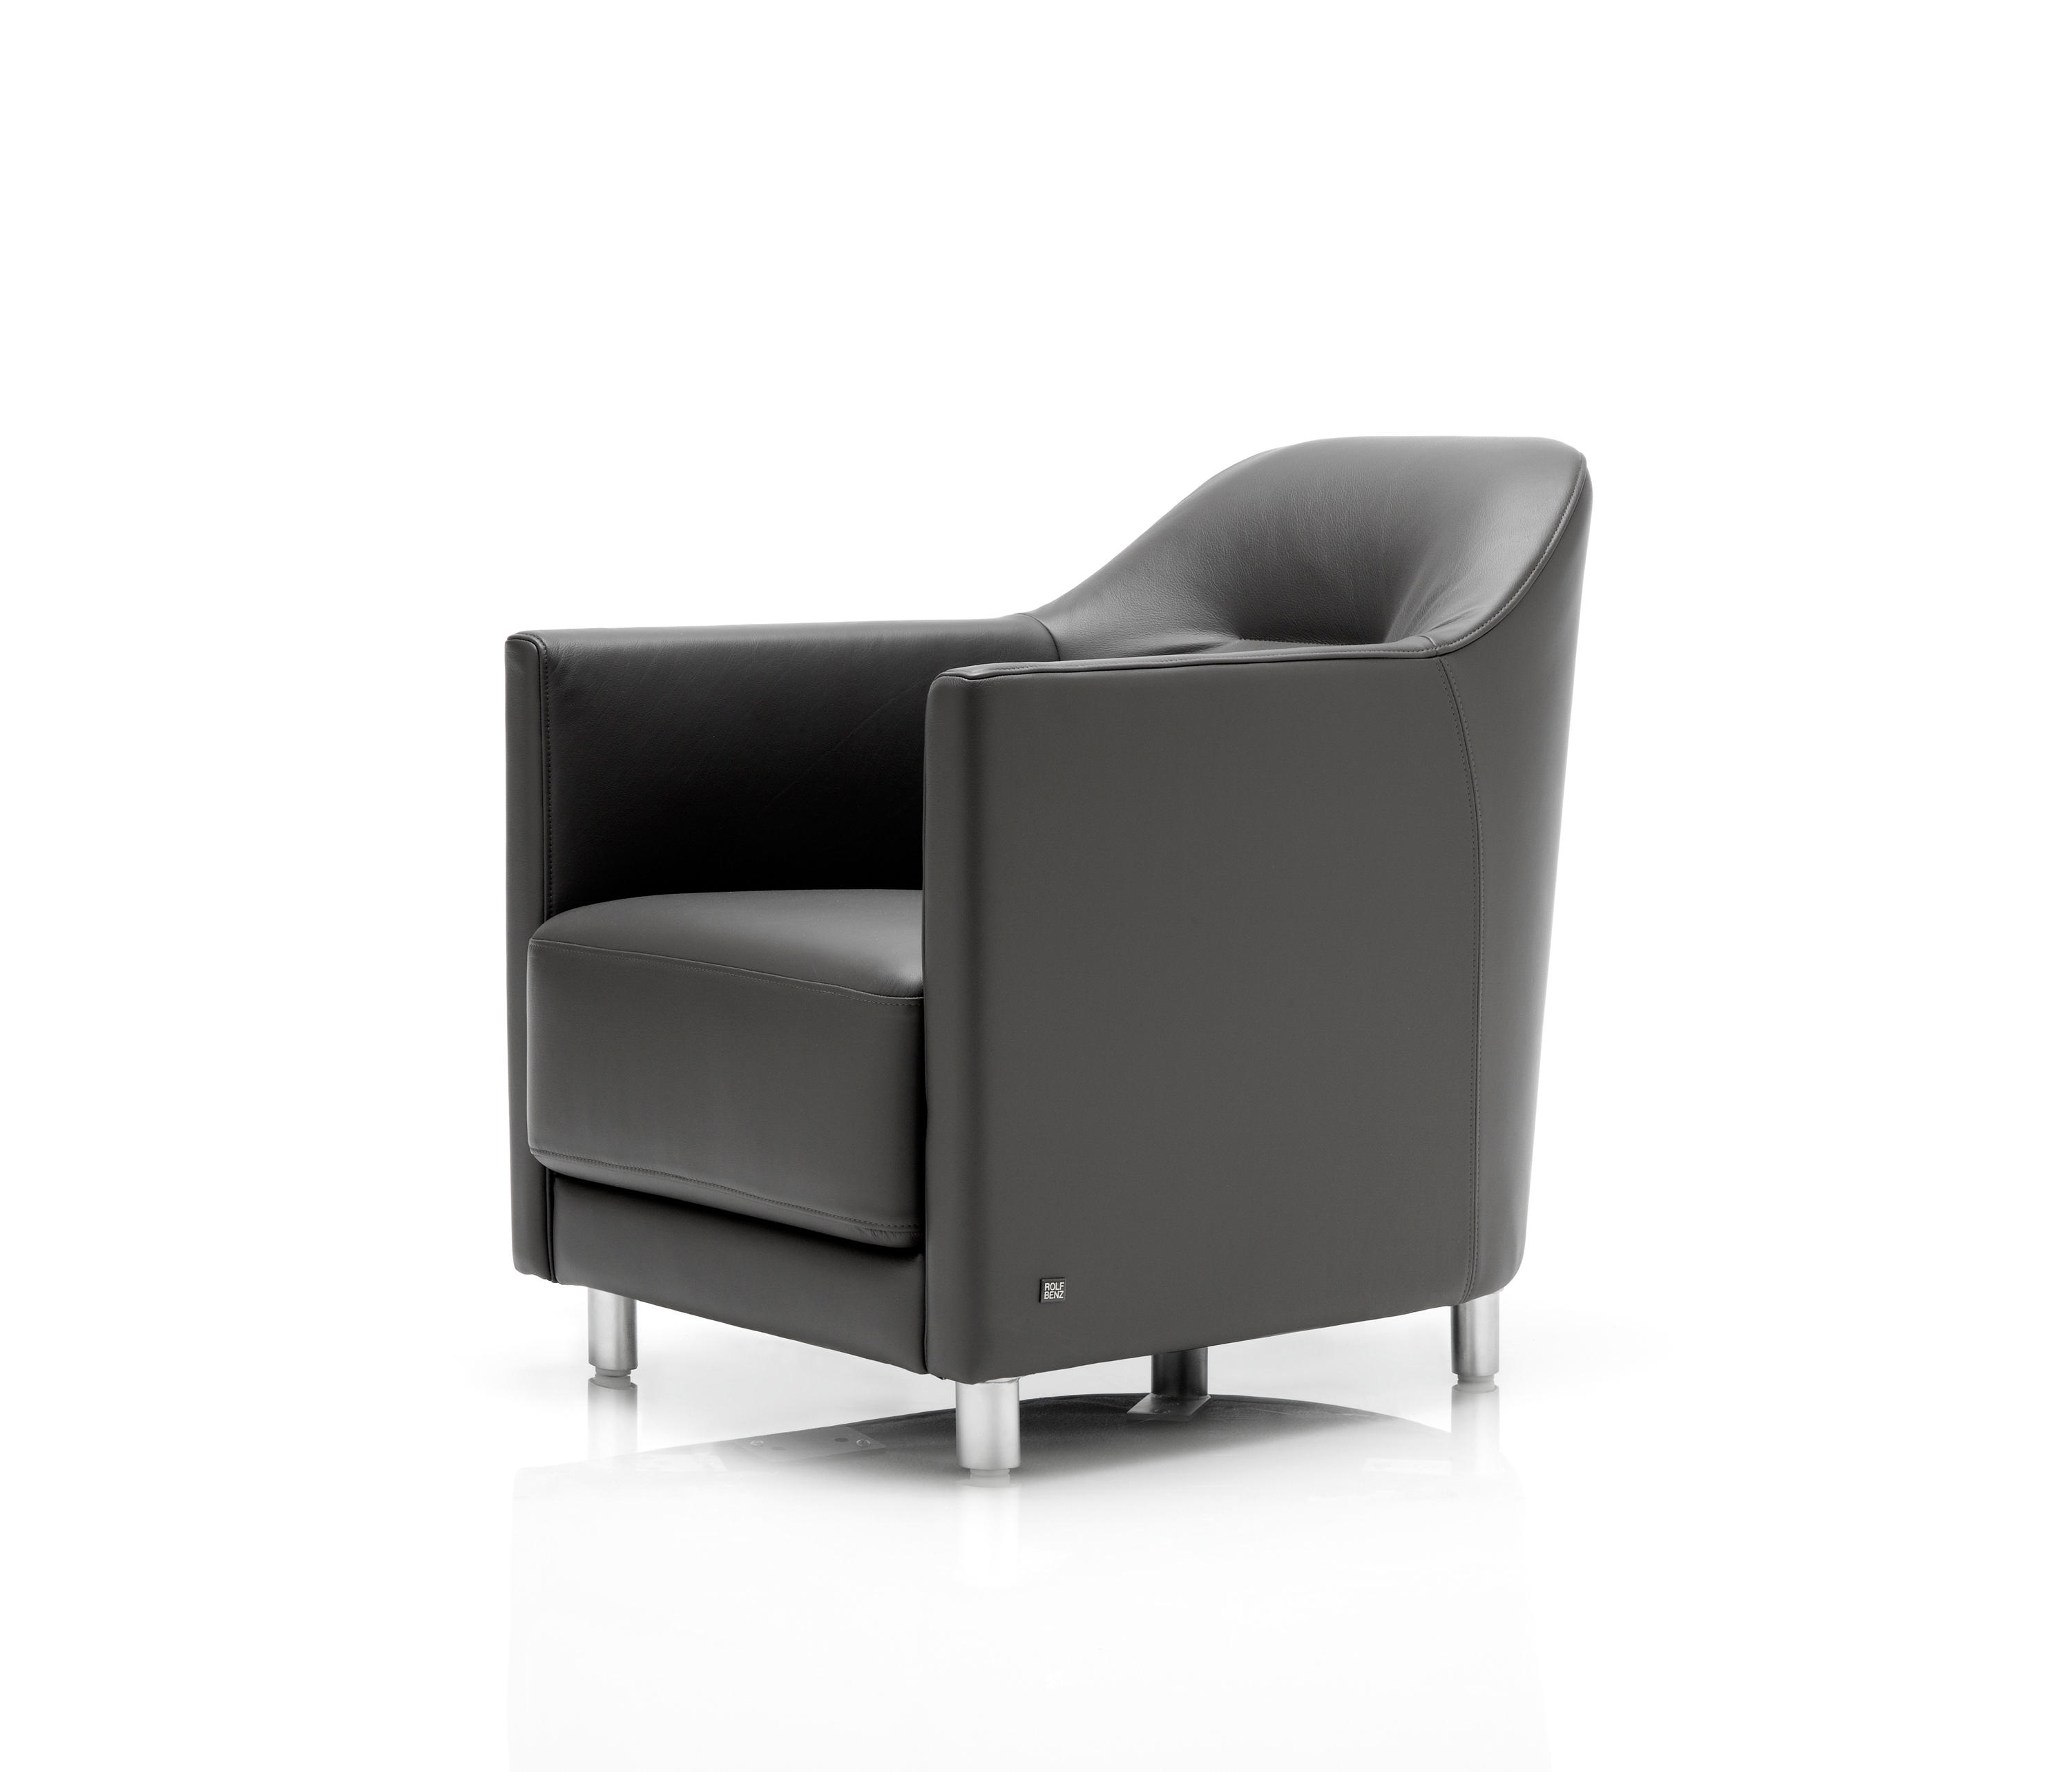 rolf benz onda lounge chairs from rolf benz architonic. Black Bedroom Furniture Sets. Home Design Ideas